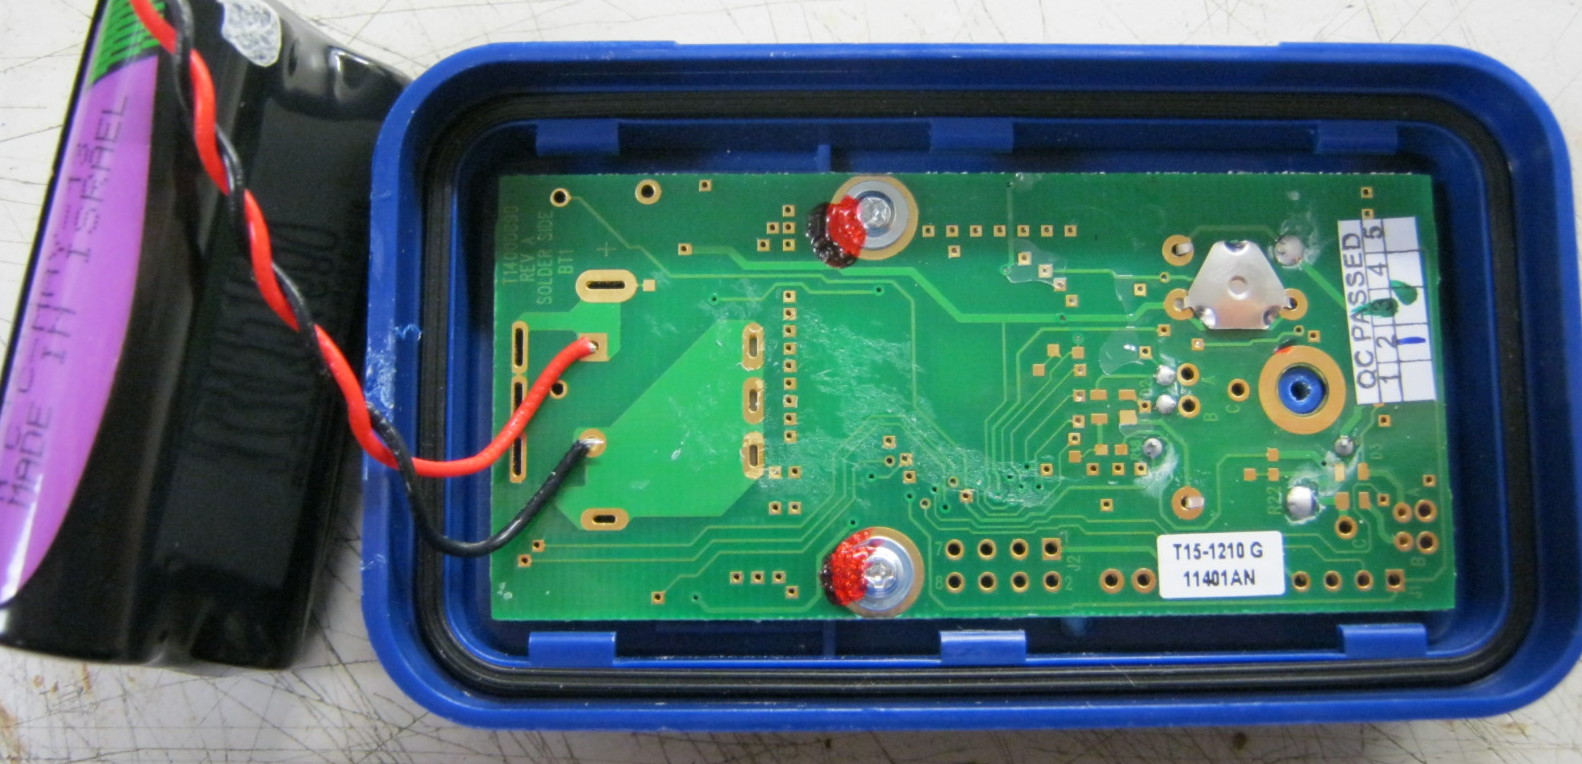 timtearsitapart outguessing the machine bottom side of pcb exposed